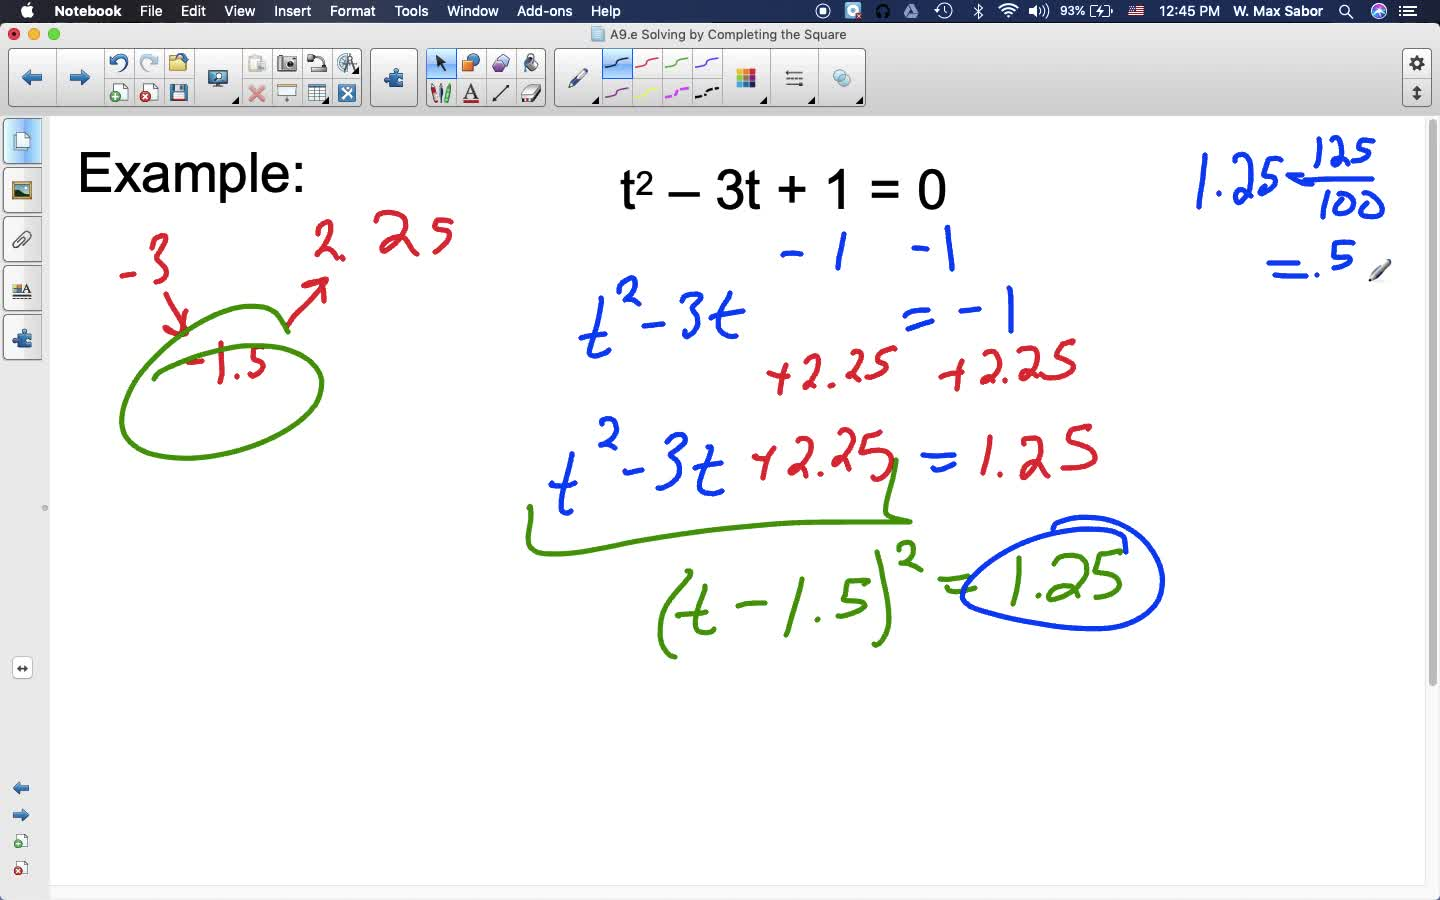 A9.e Solving by Completing the Square